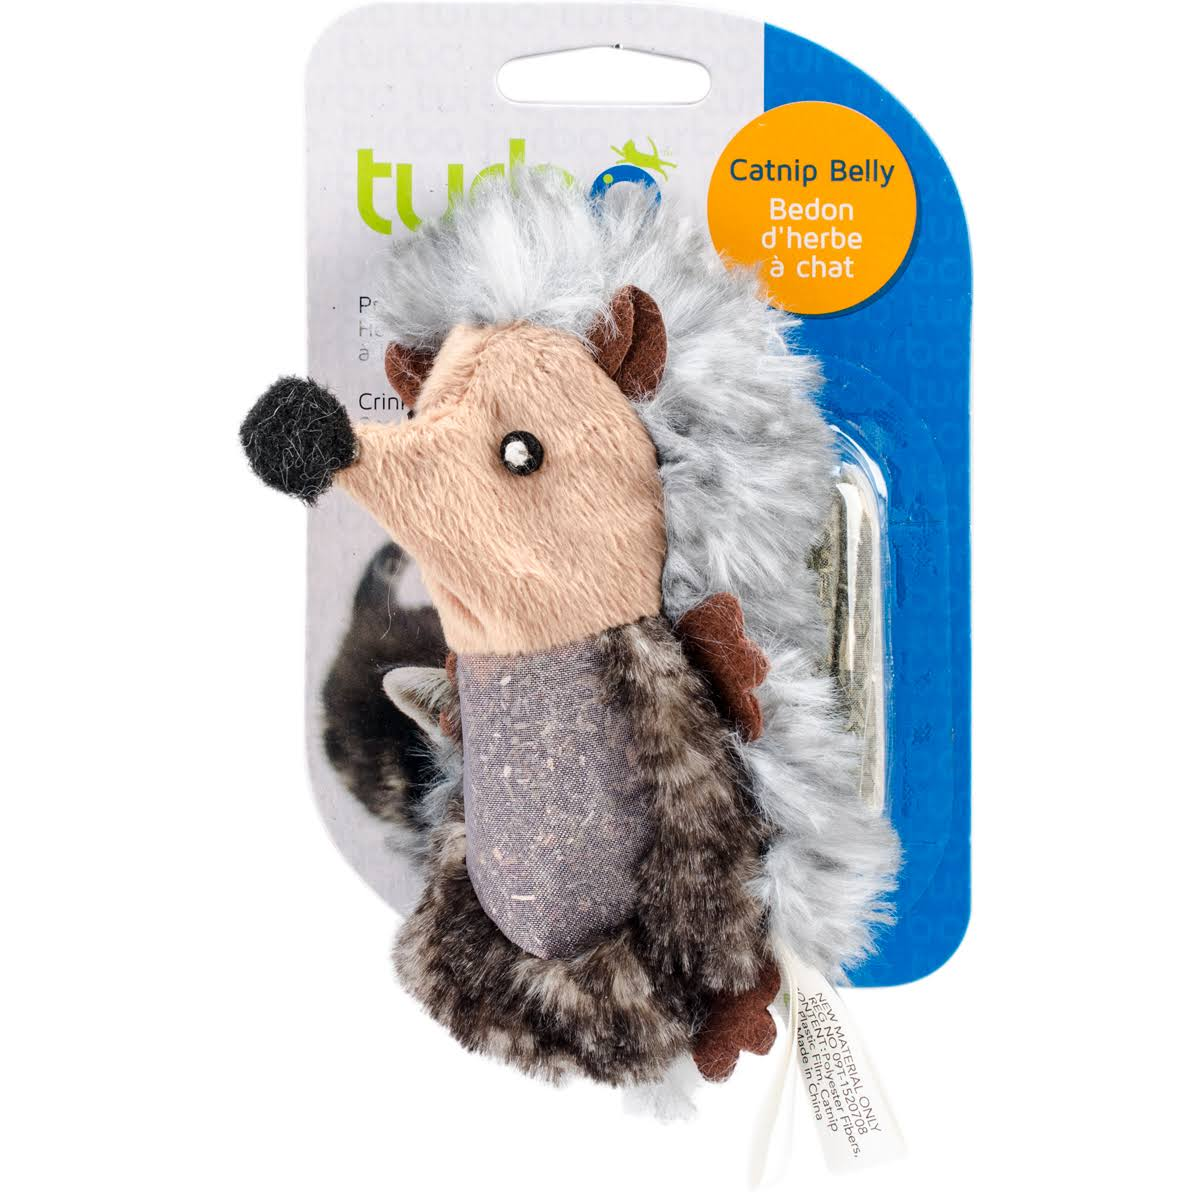 Turbo Catnip Belly Critters Cat Toy Hedgehog - 6.5""